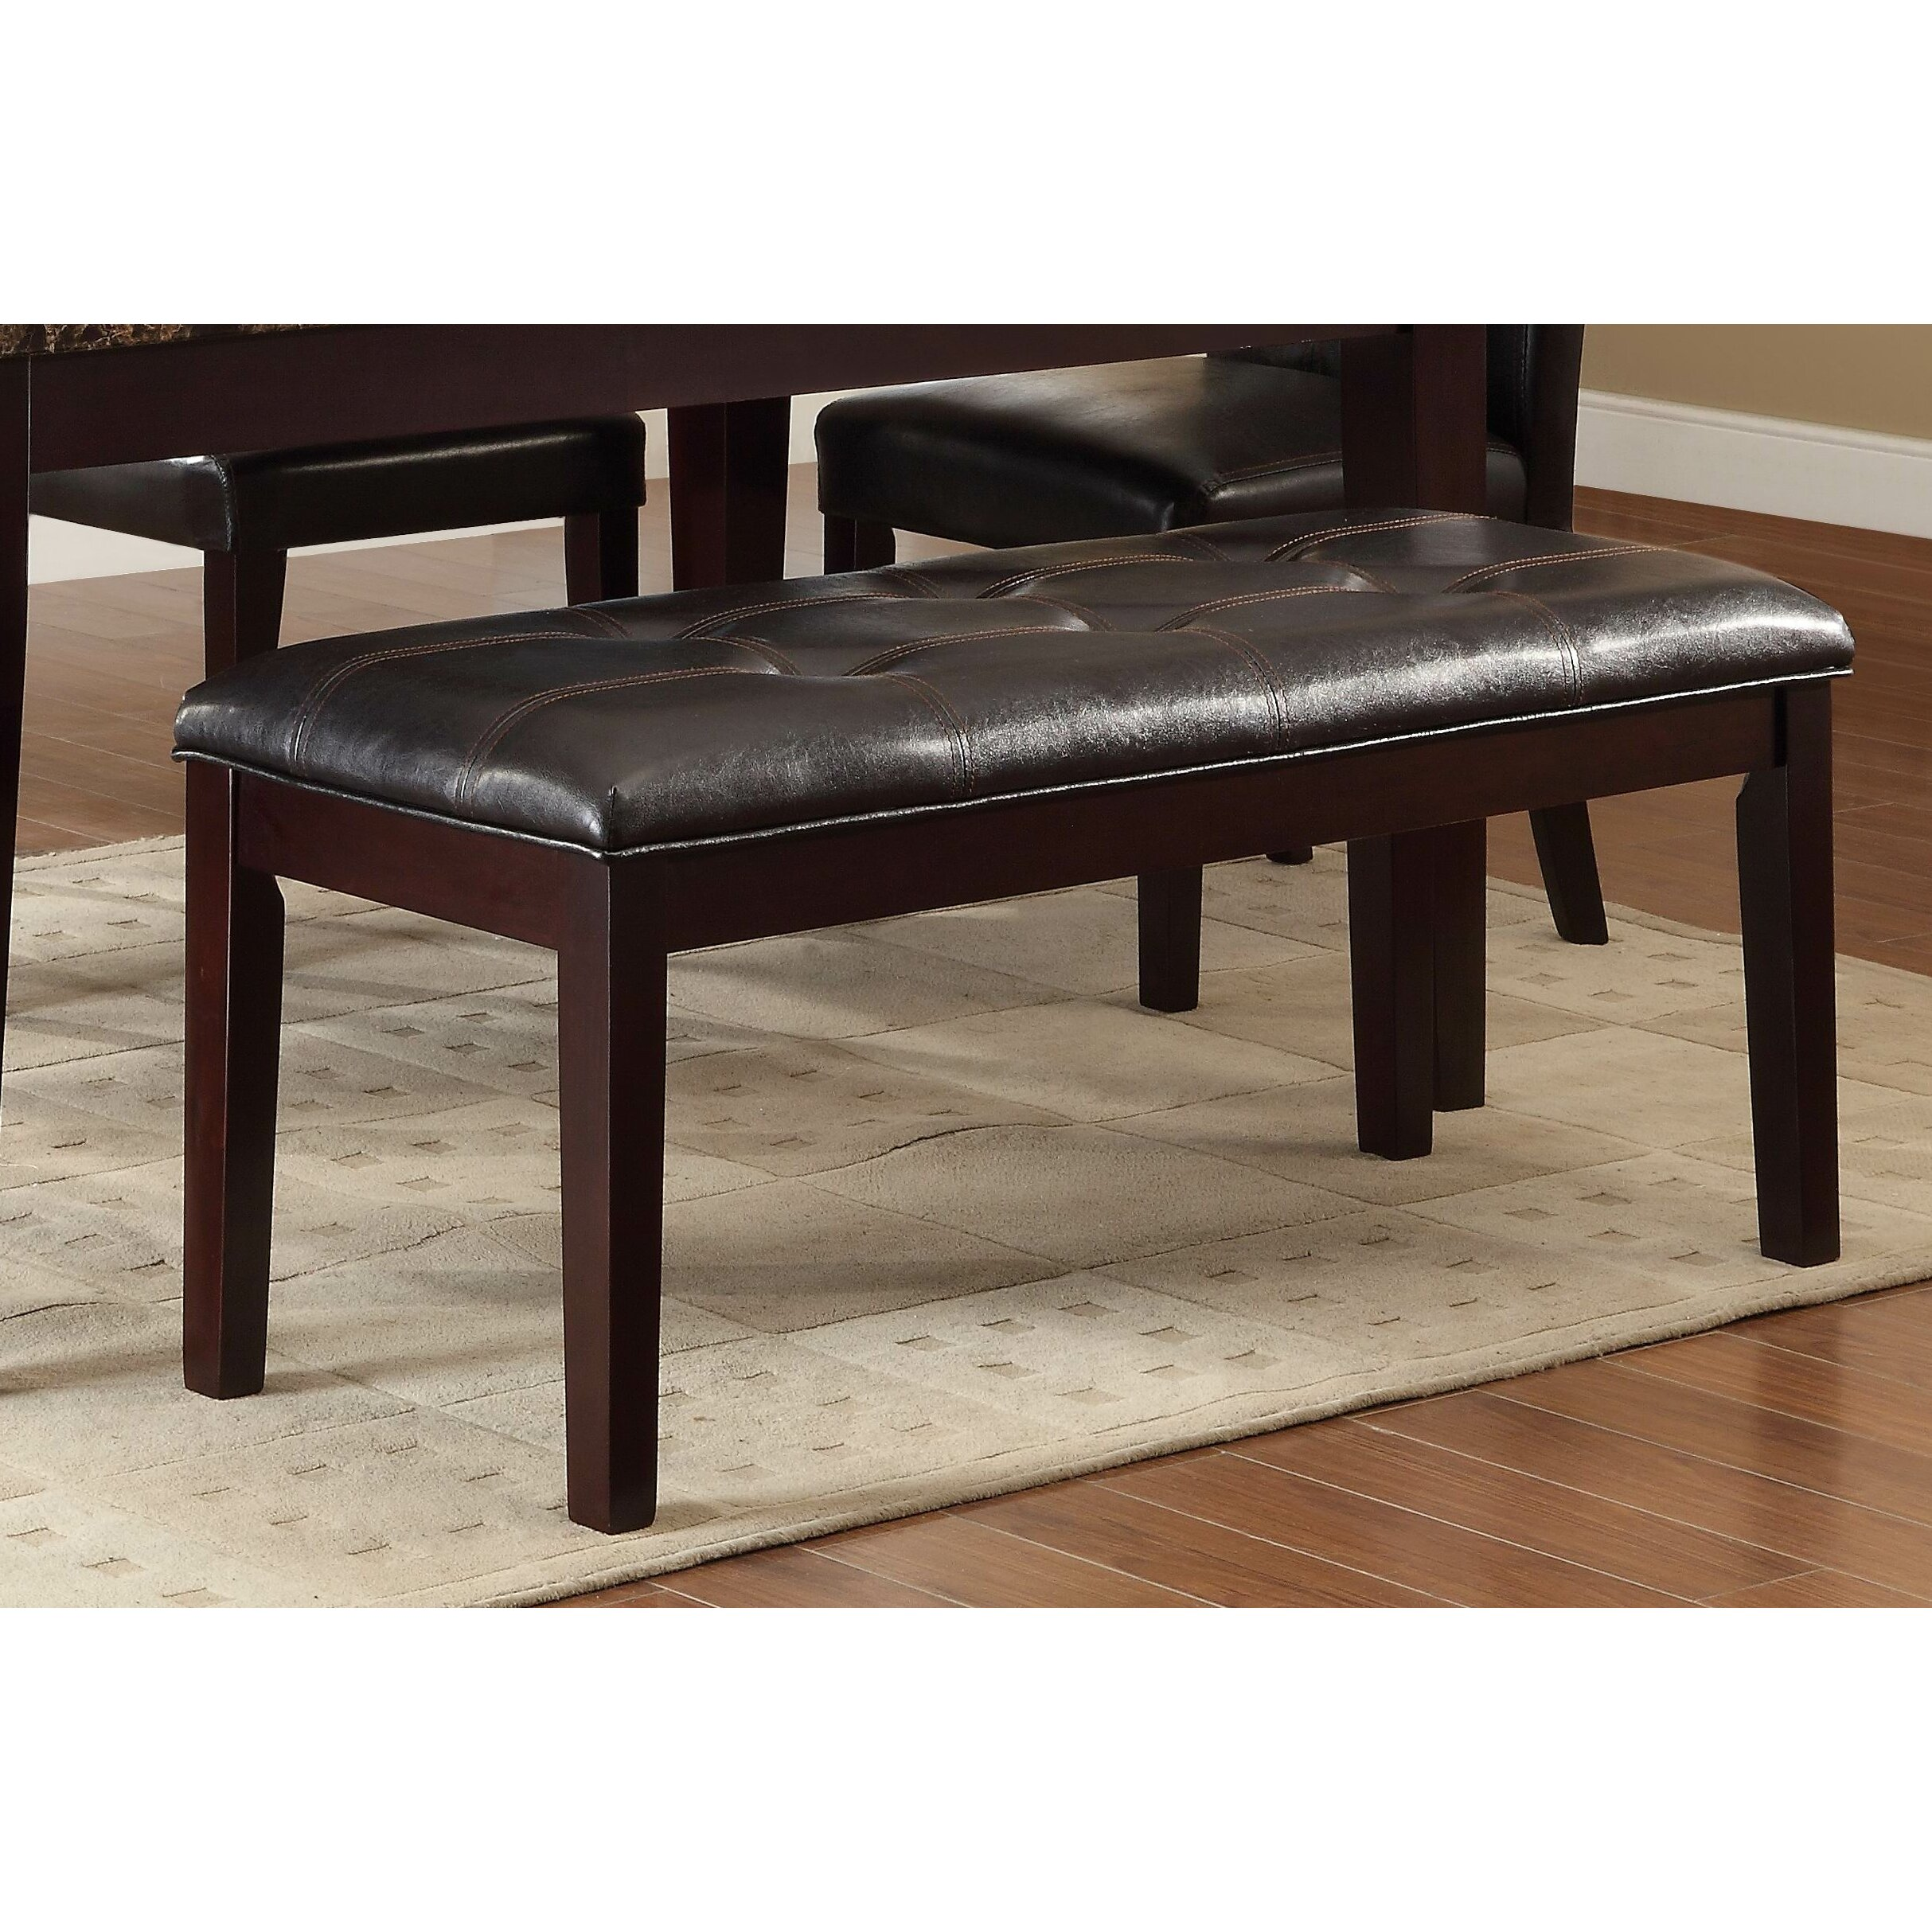 Woodhaven Hill Teague Upholstered Kitchen Bench & Reviews